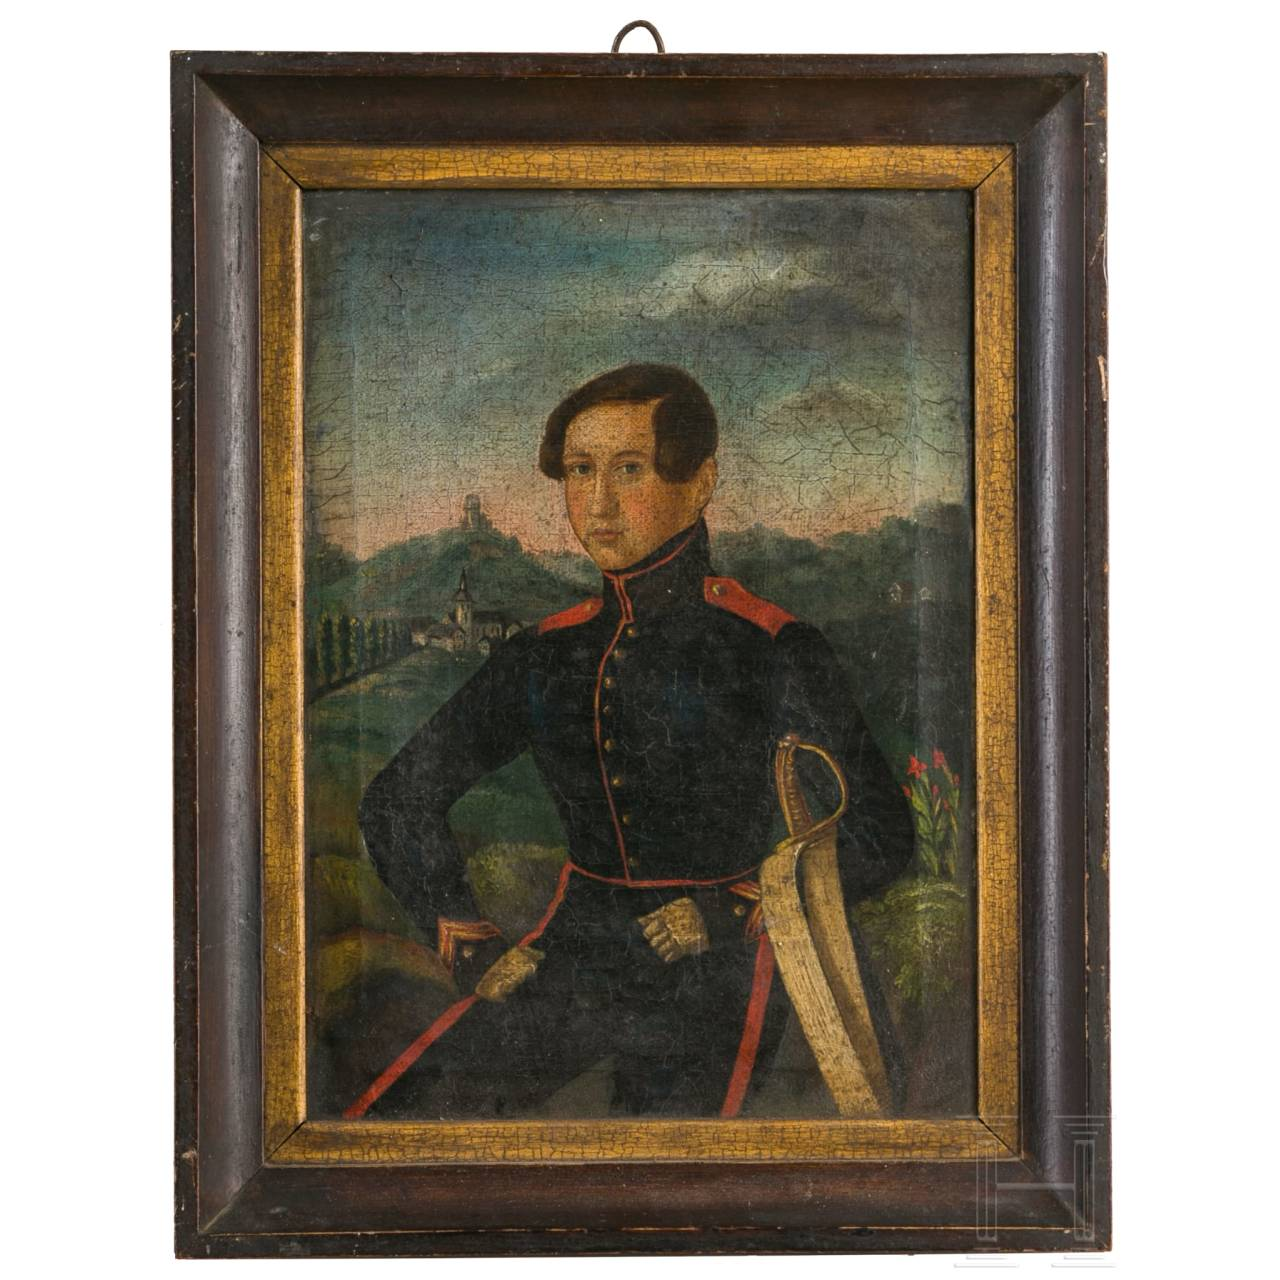 Portrait of a soldier in front of Staufen Castle, c. 1850